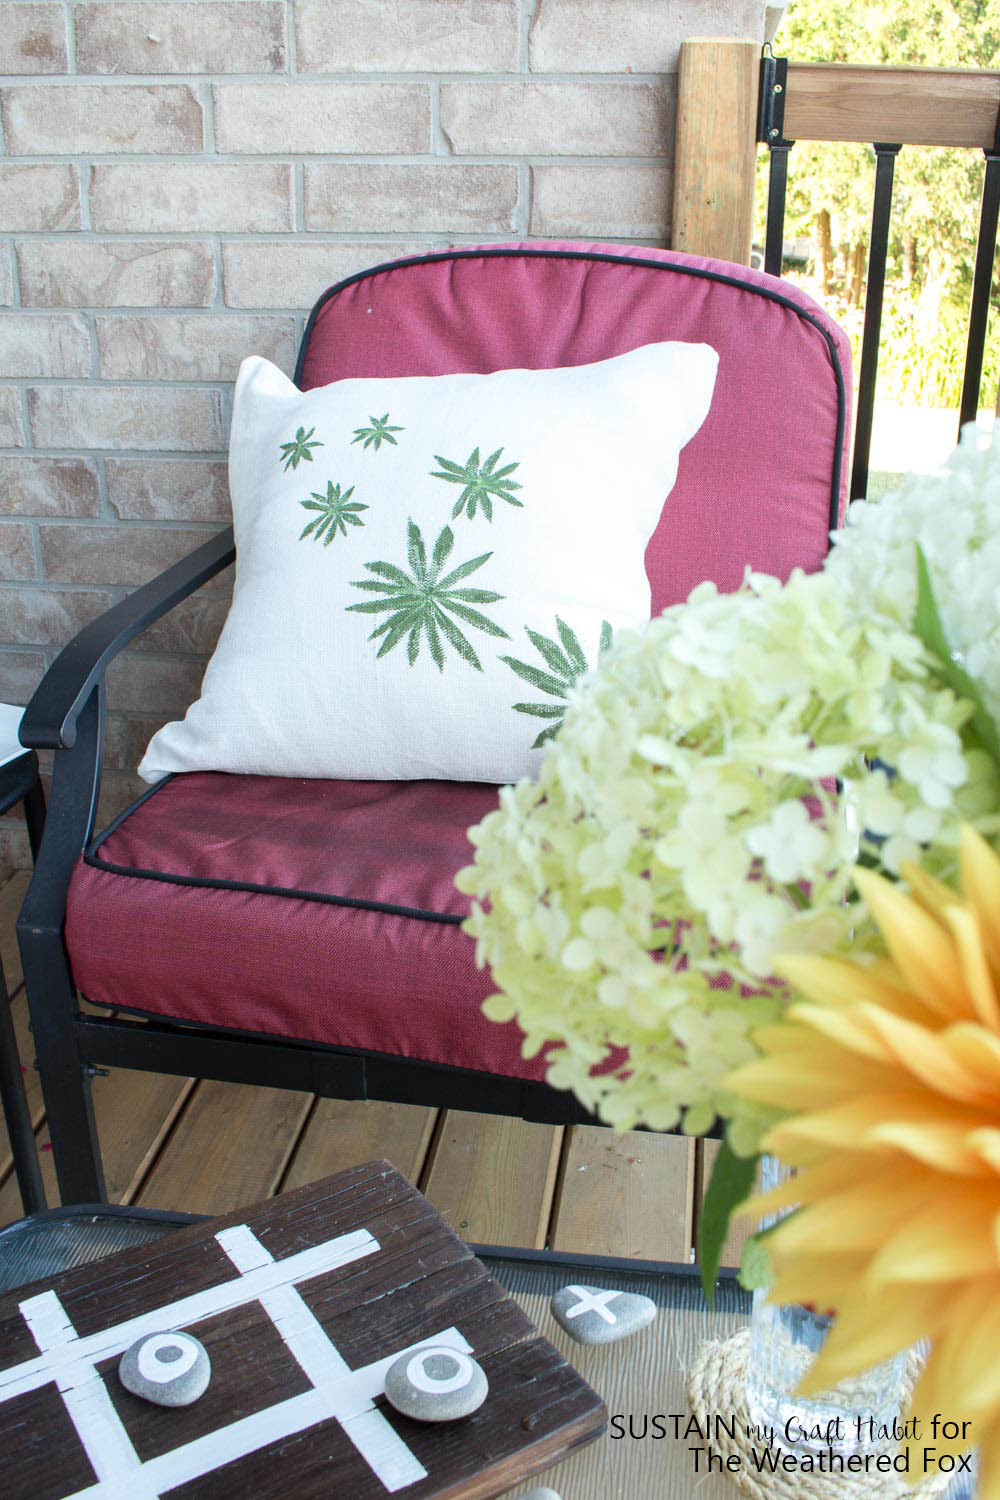 Upcycle a plain throw pillow into an inexpensive DIY outdoor pillow cover. Lovely patio or porch idea for the summer. Full tutorial included.